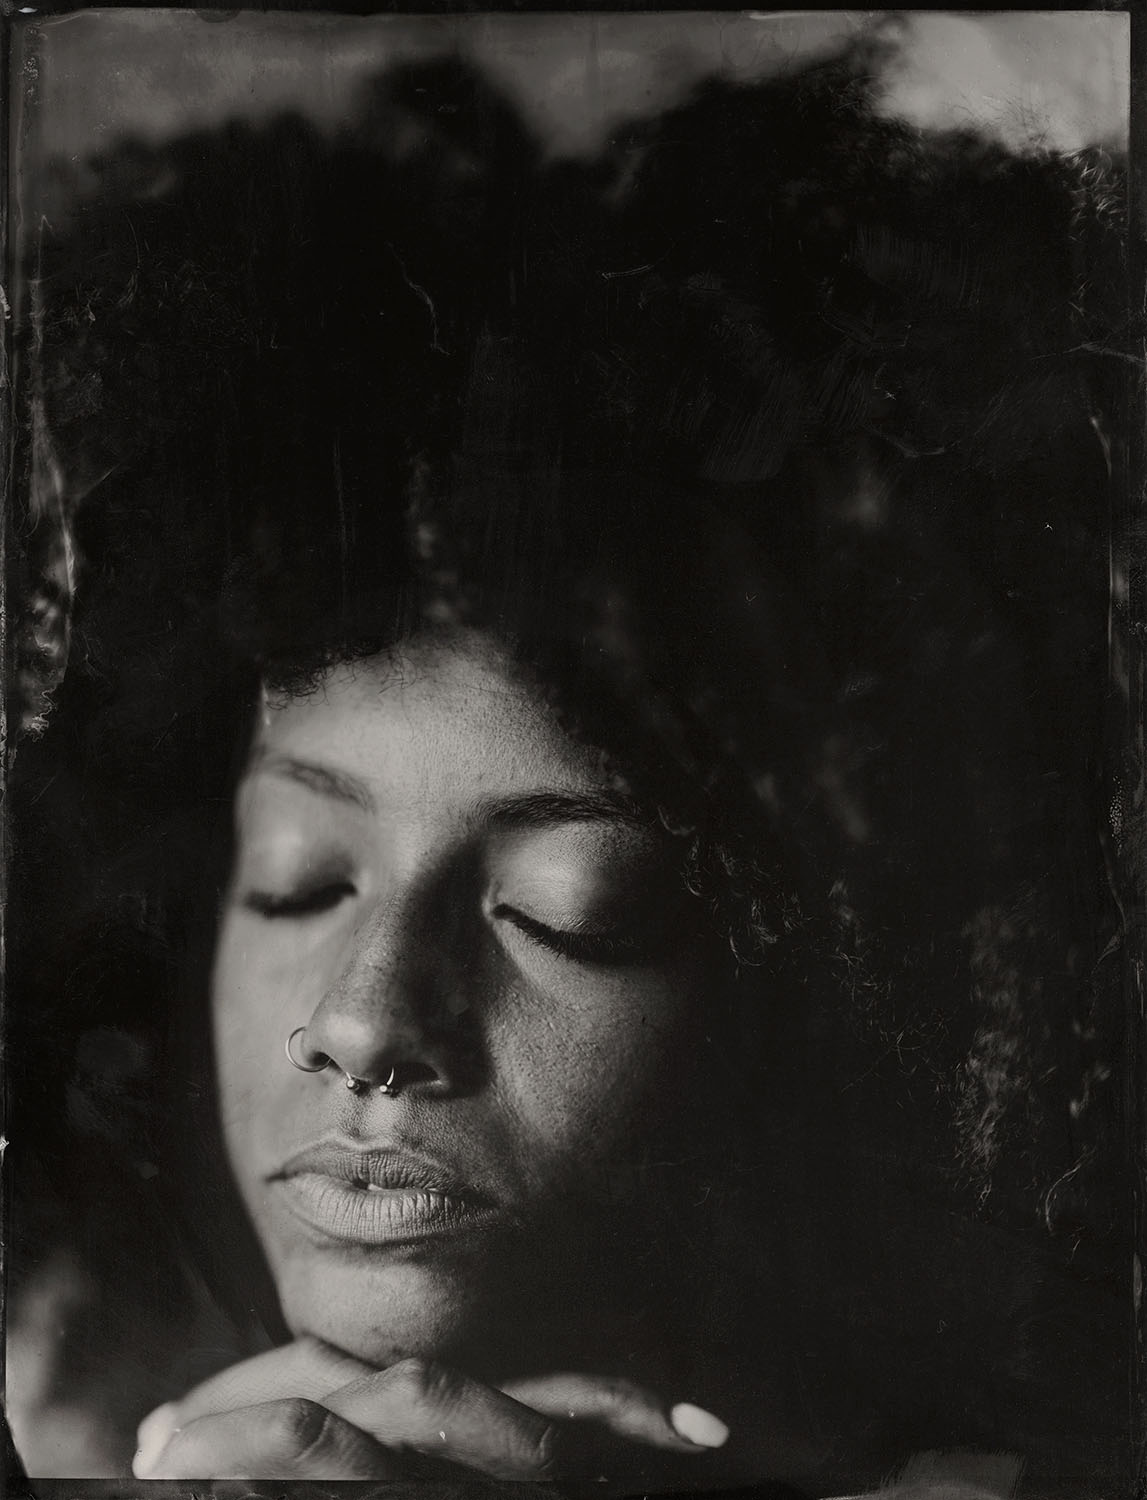 Title : Chyenne  By:  Michael Chylinski  moderntintype.photo